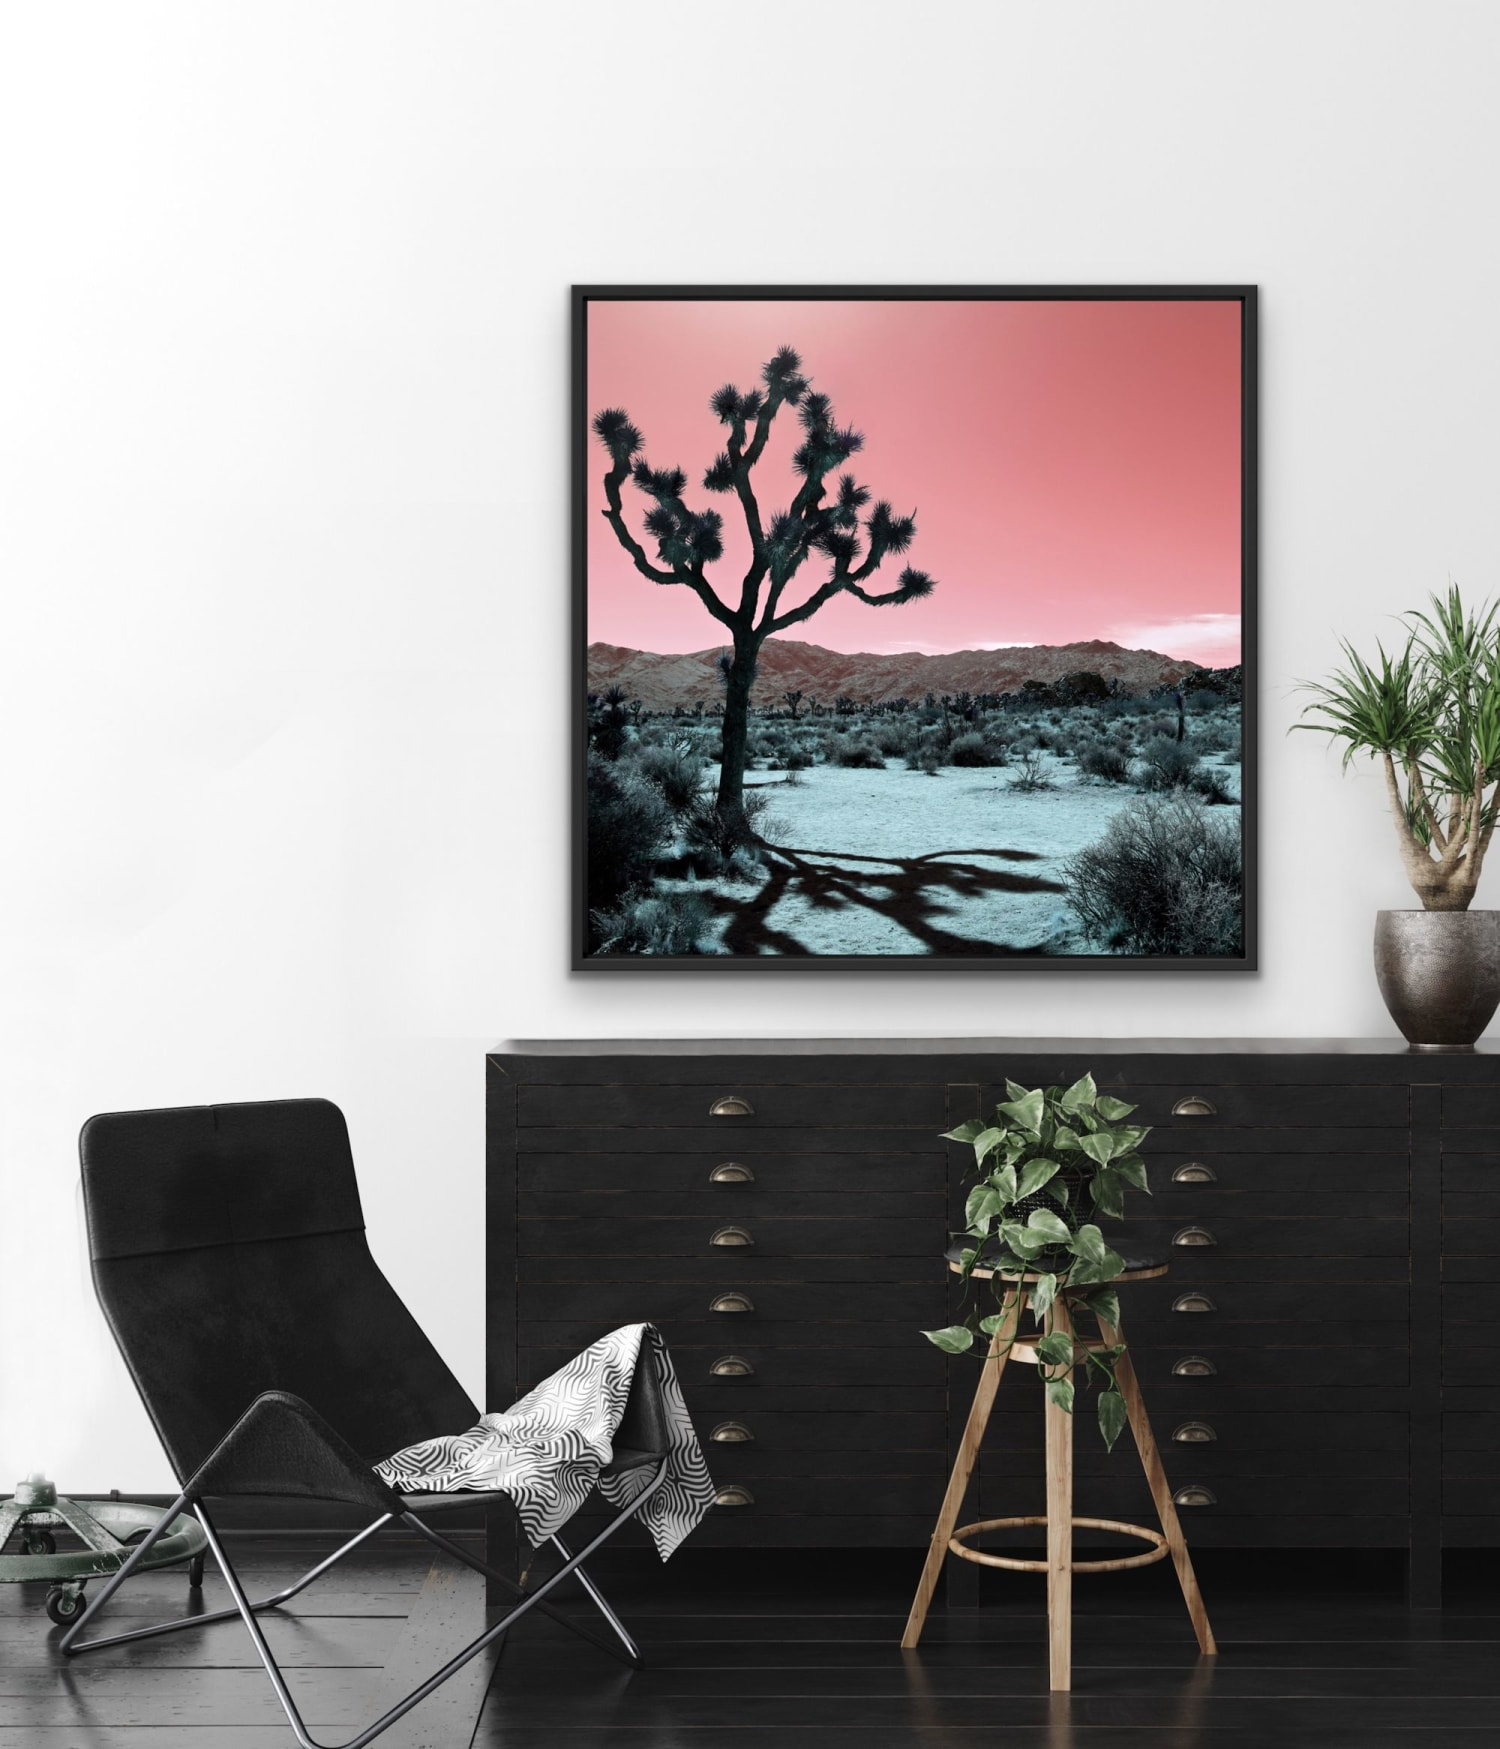 Pastel Pink and Blue Desert Scene with Silhouette of Joshua Tree in the Mid-ground